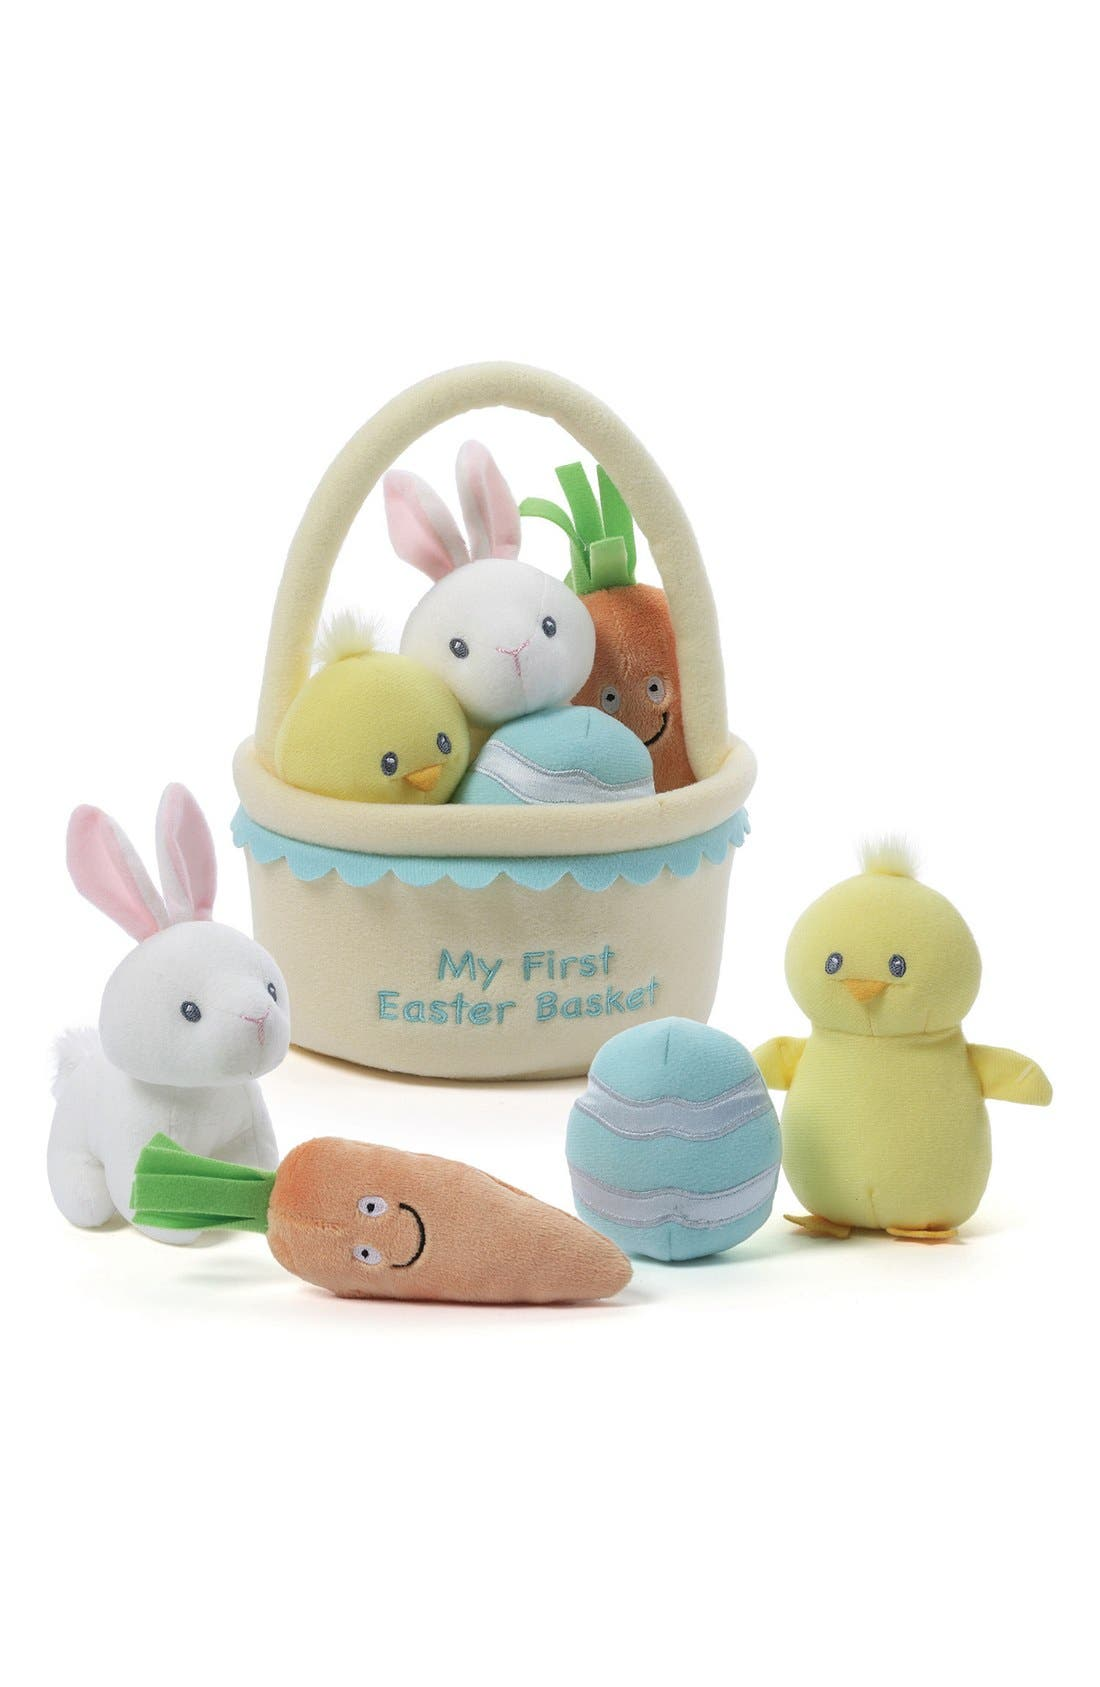 Baby Gund 'My First Easter Basket' Plush Play Set